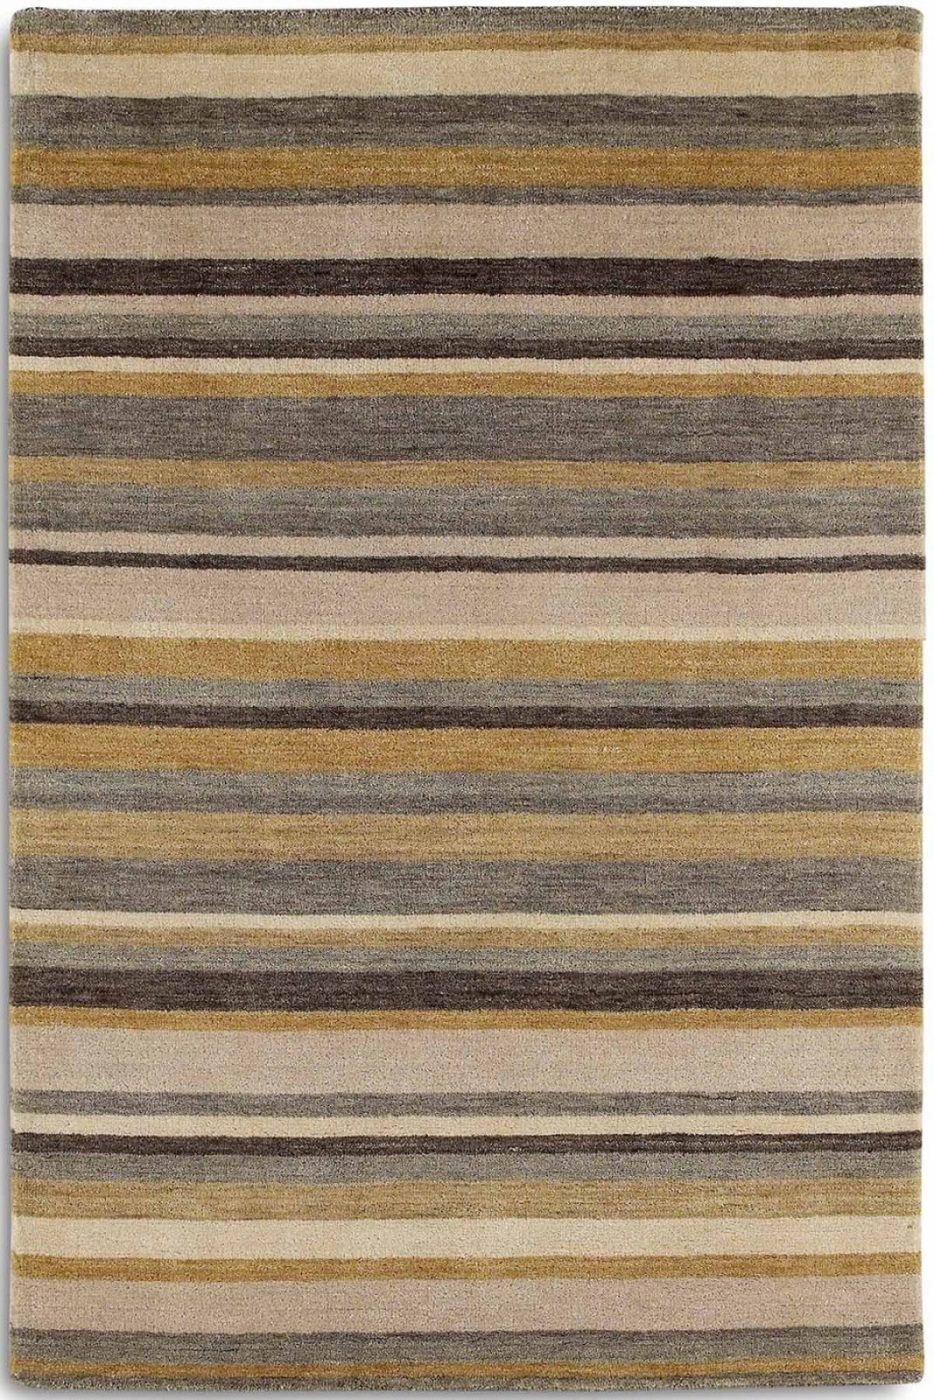 Regatta REG02 | Plantation Rug Company | Best at Flooring